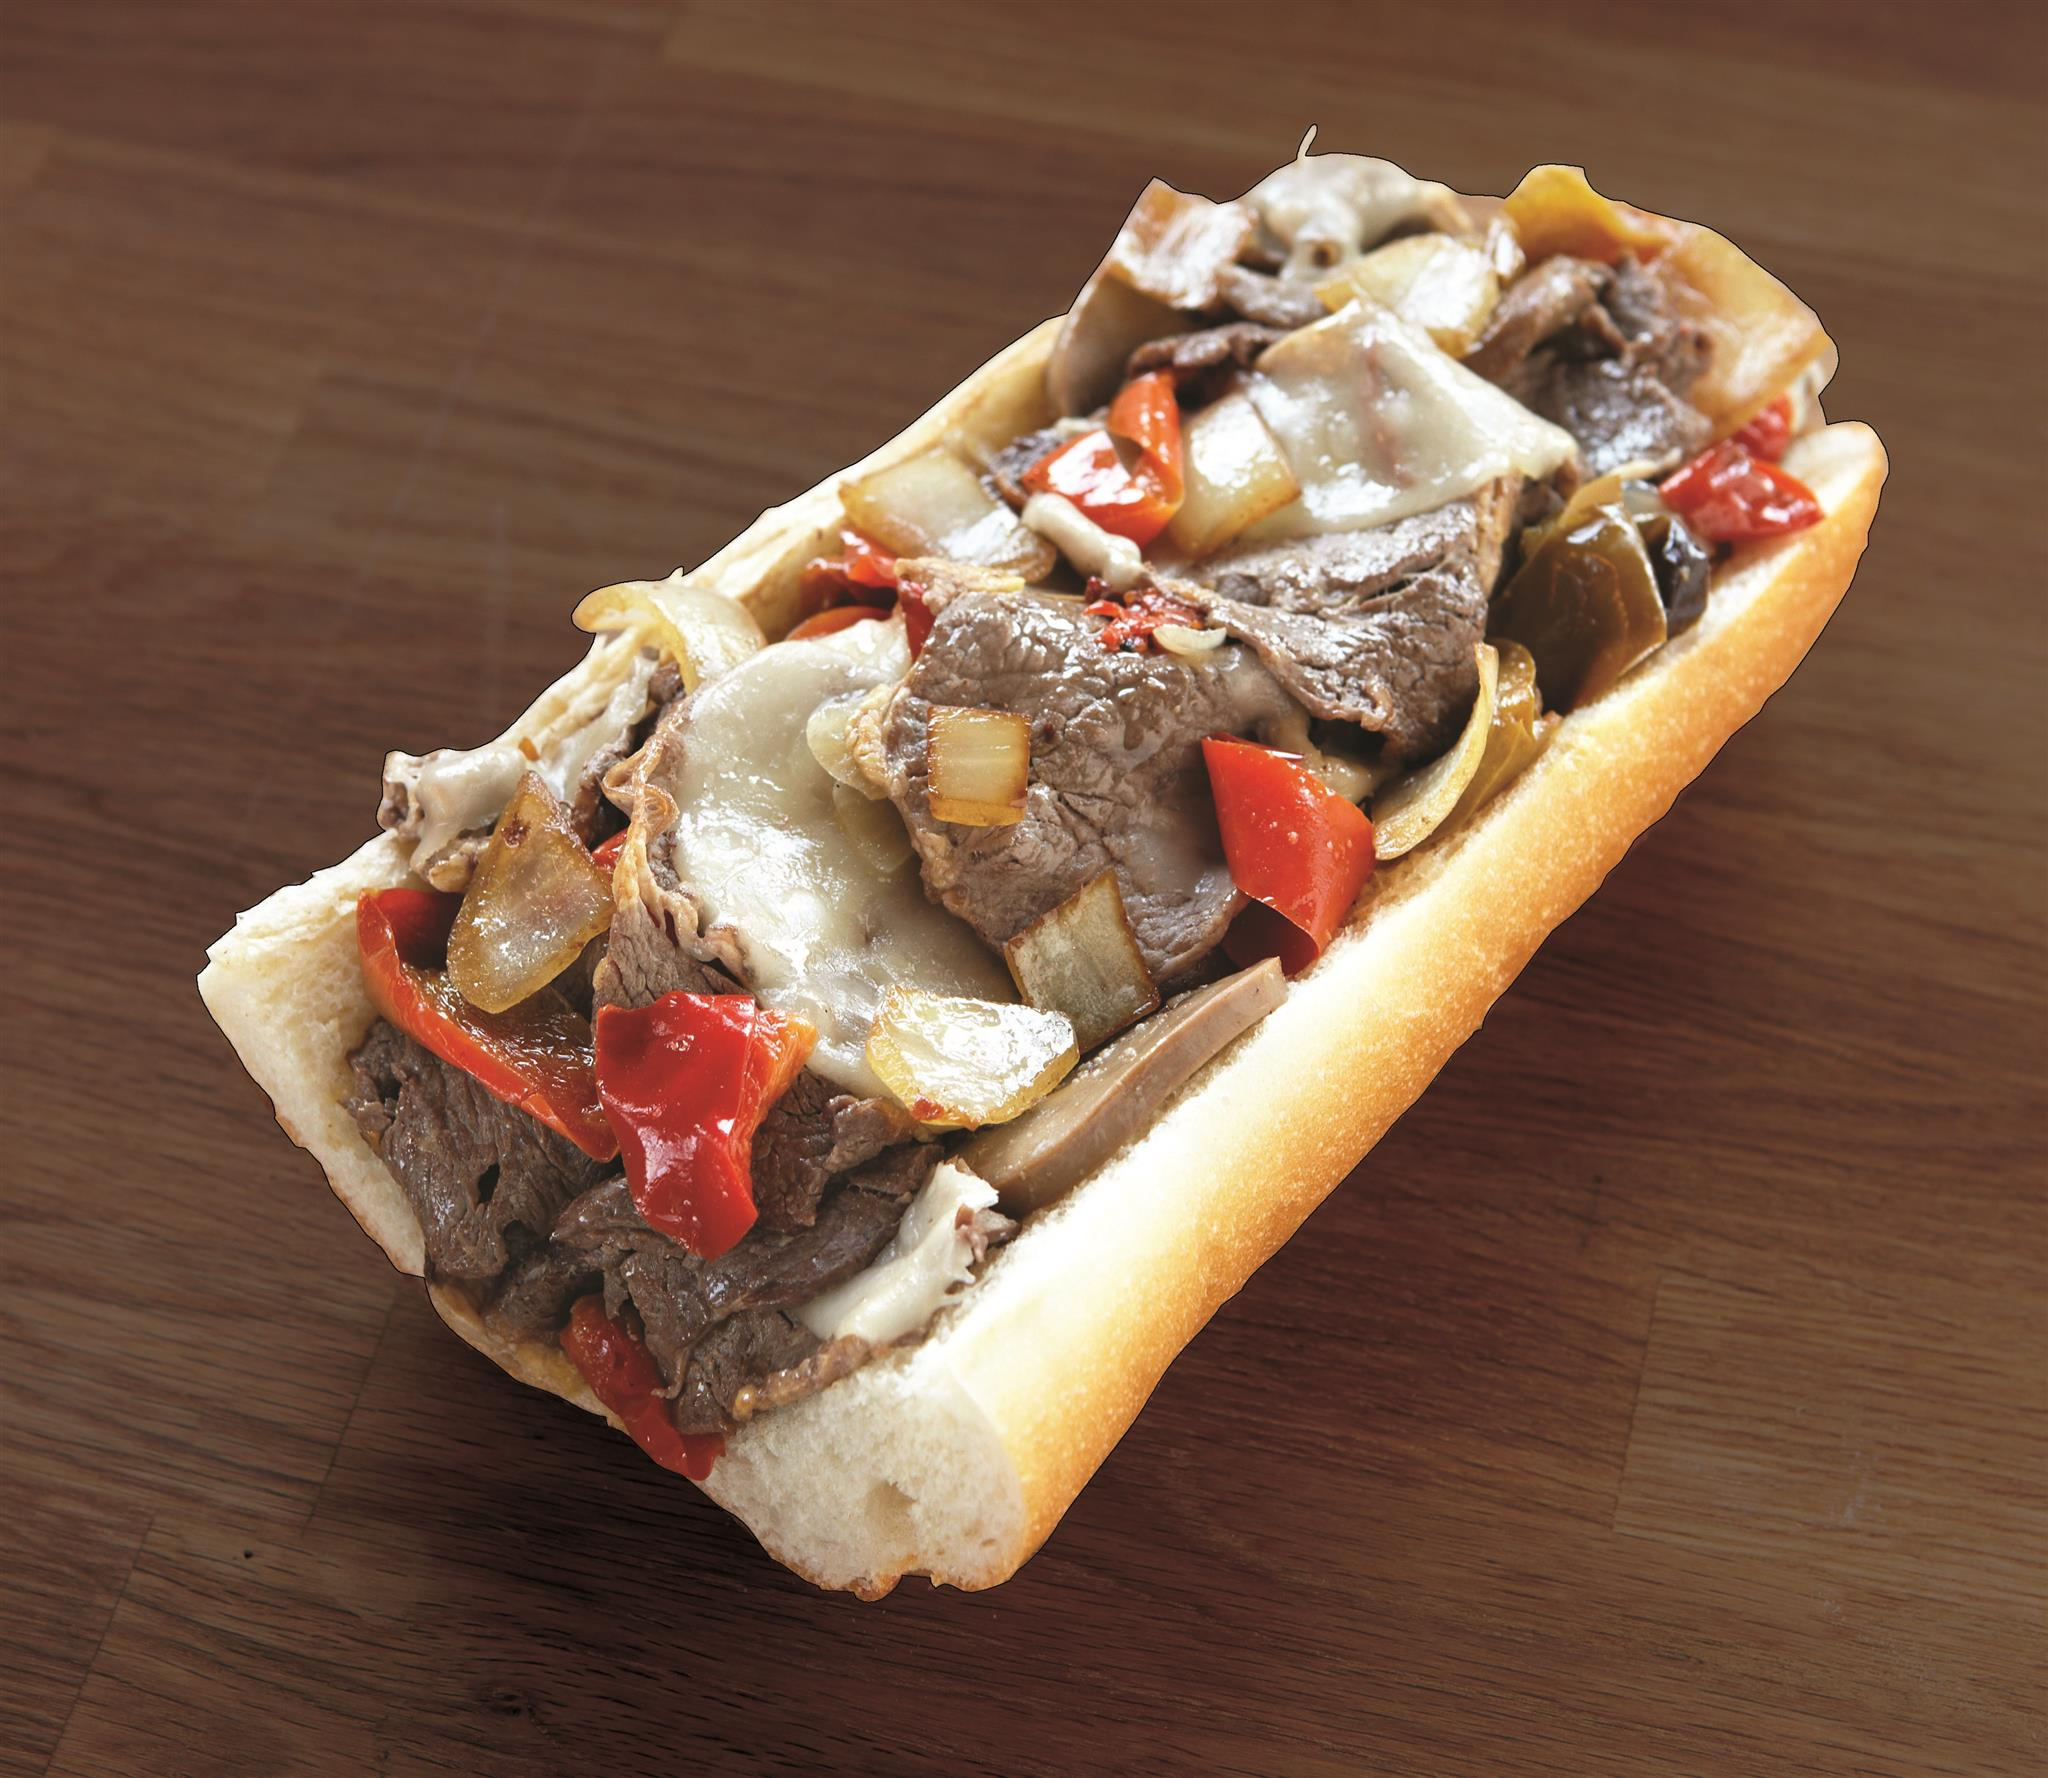 Philly cheesesteak with onions peppers and mushrooms